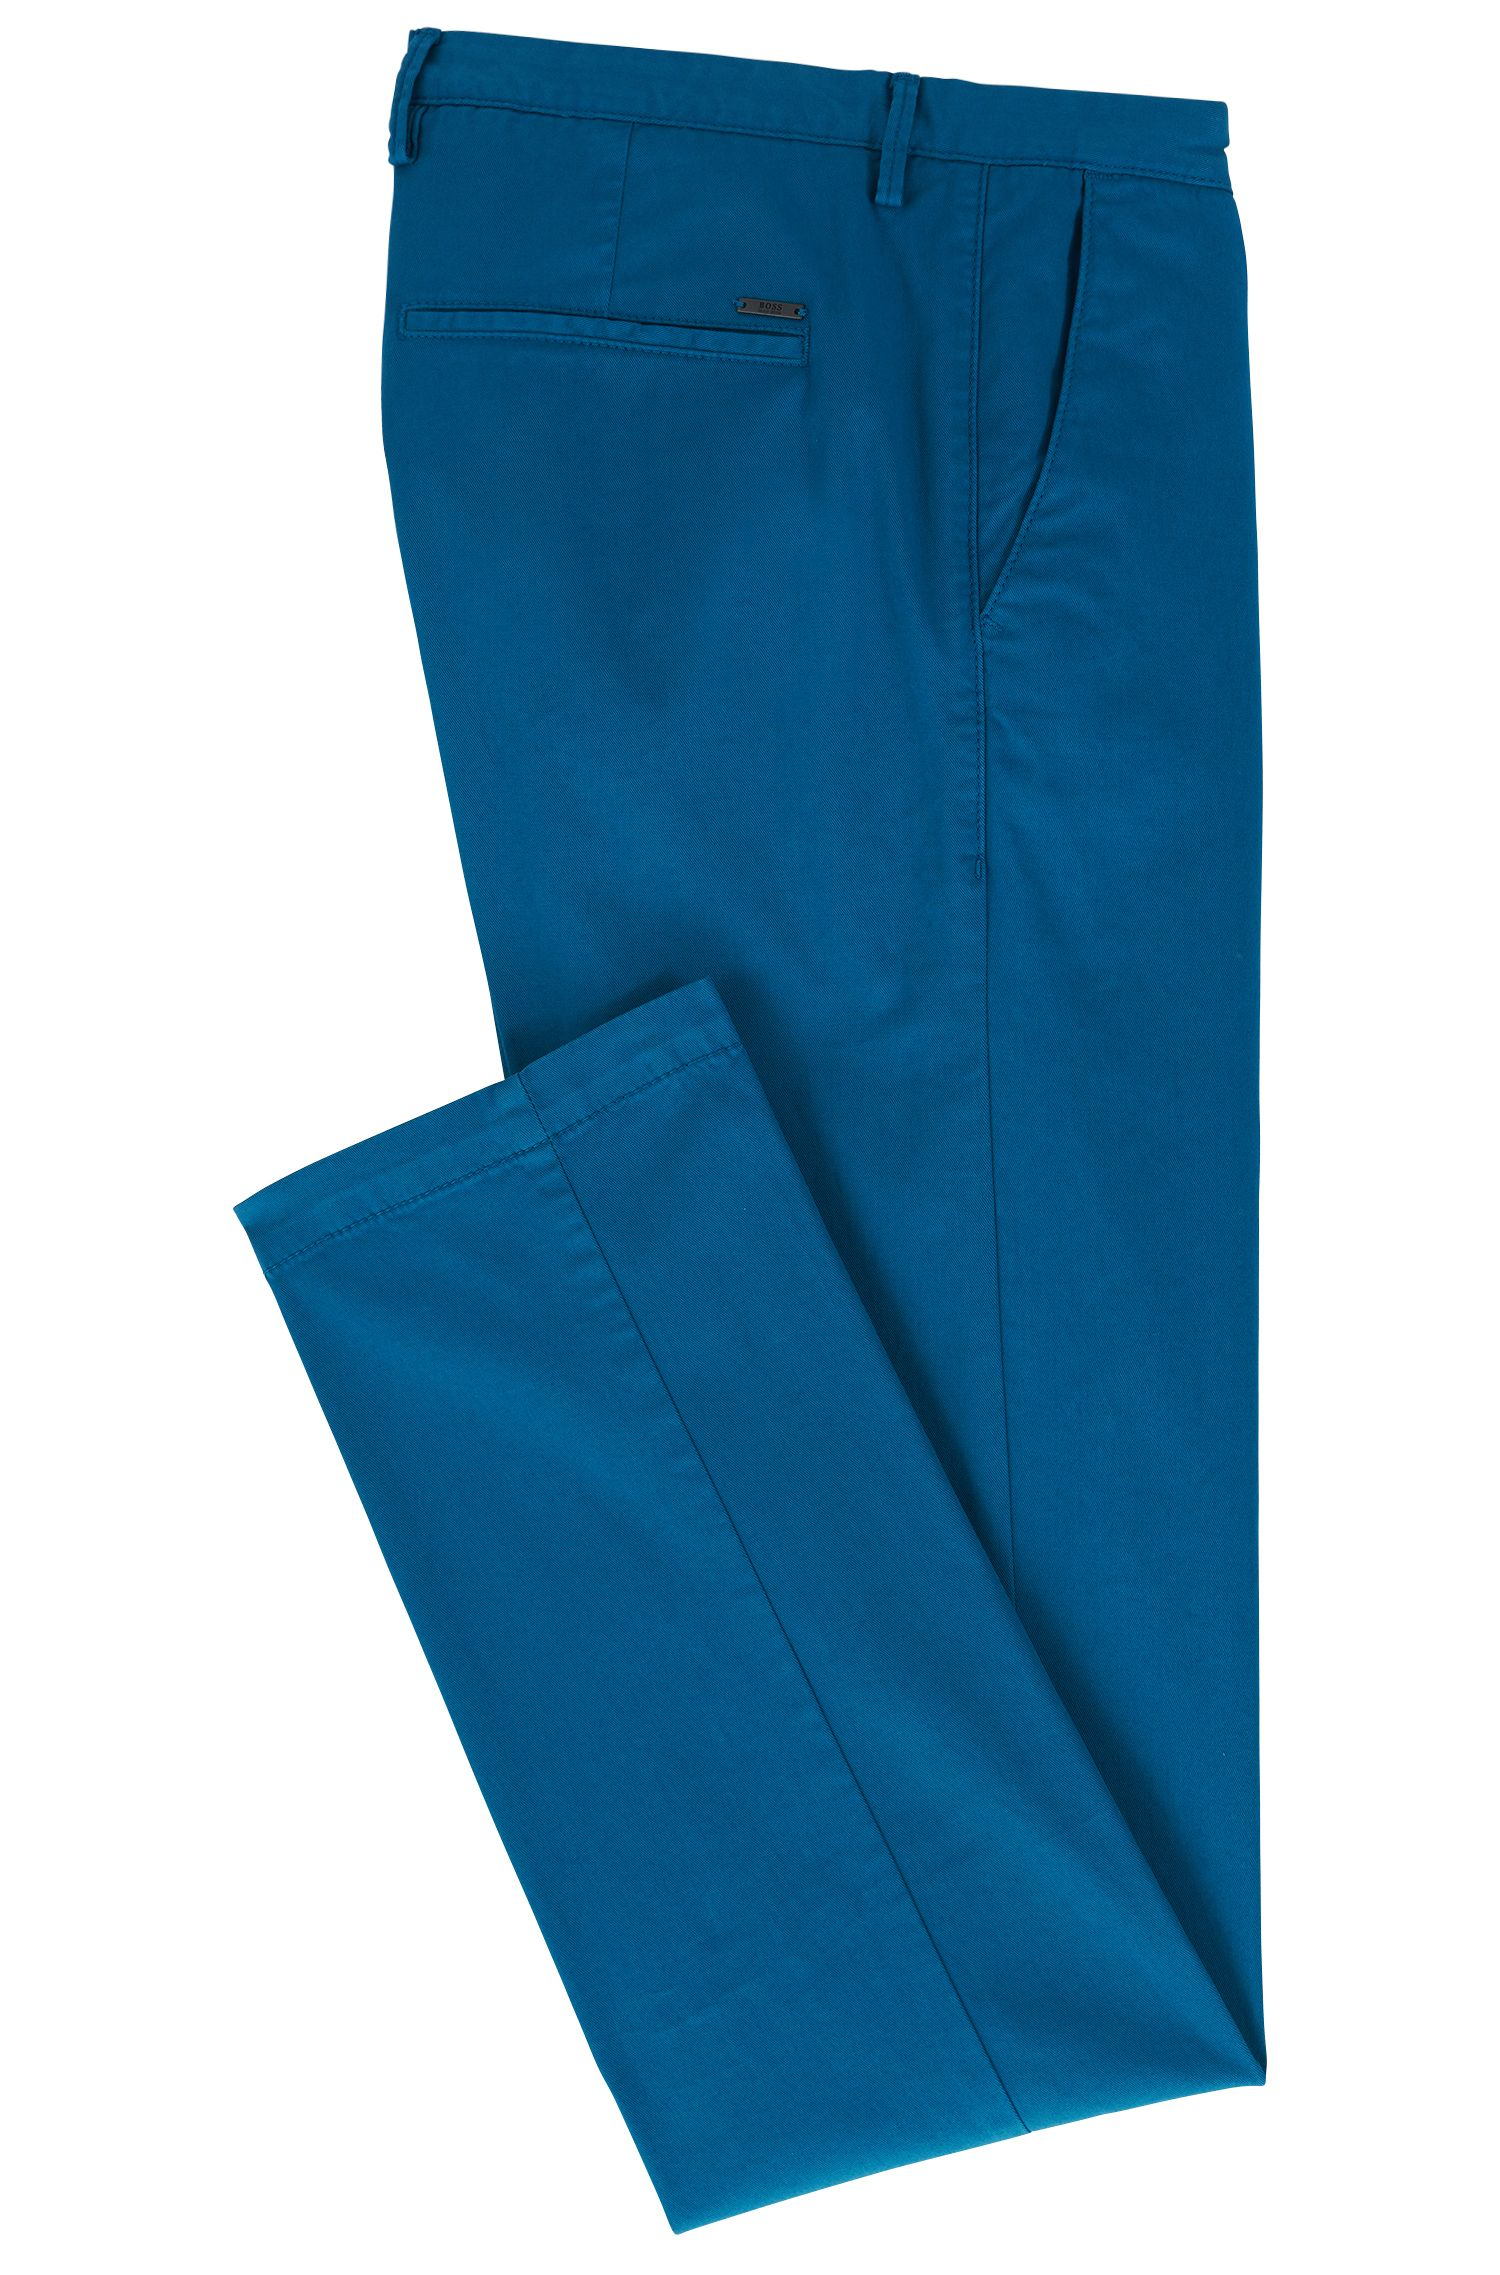 Cotton Stretch Chino Pant, Slim Fit | Rice D, Turquoise